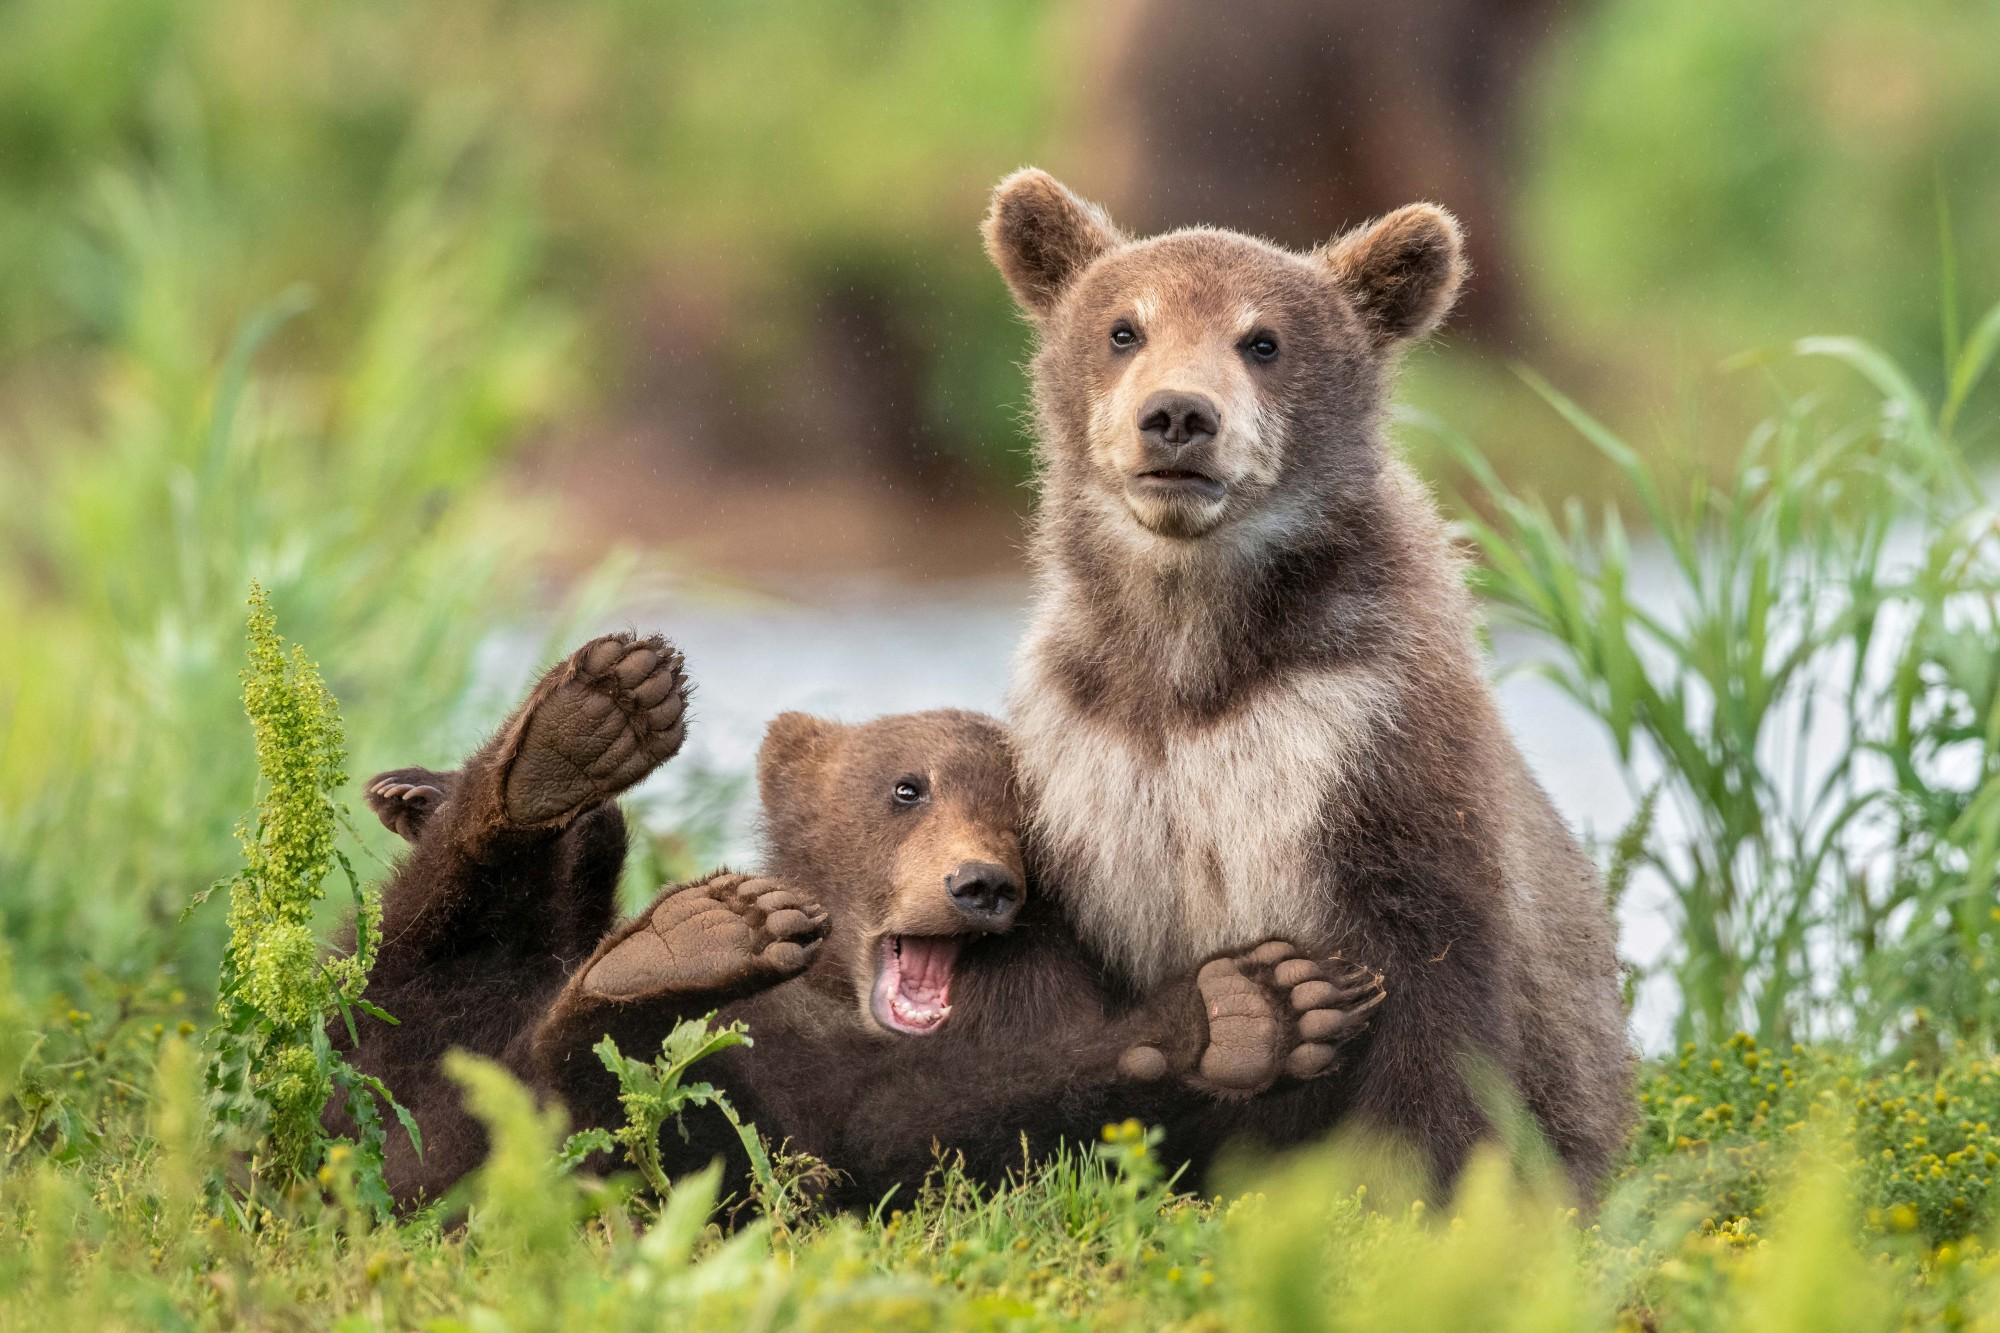 Two brown bear cubs pose, one looking serious and the other collapsing with a wide open mouth and his paws in the air